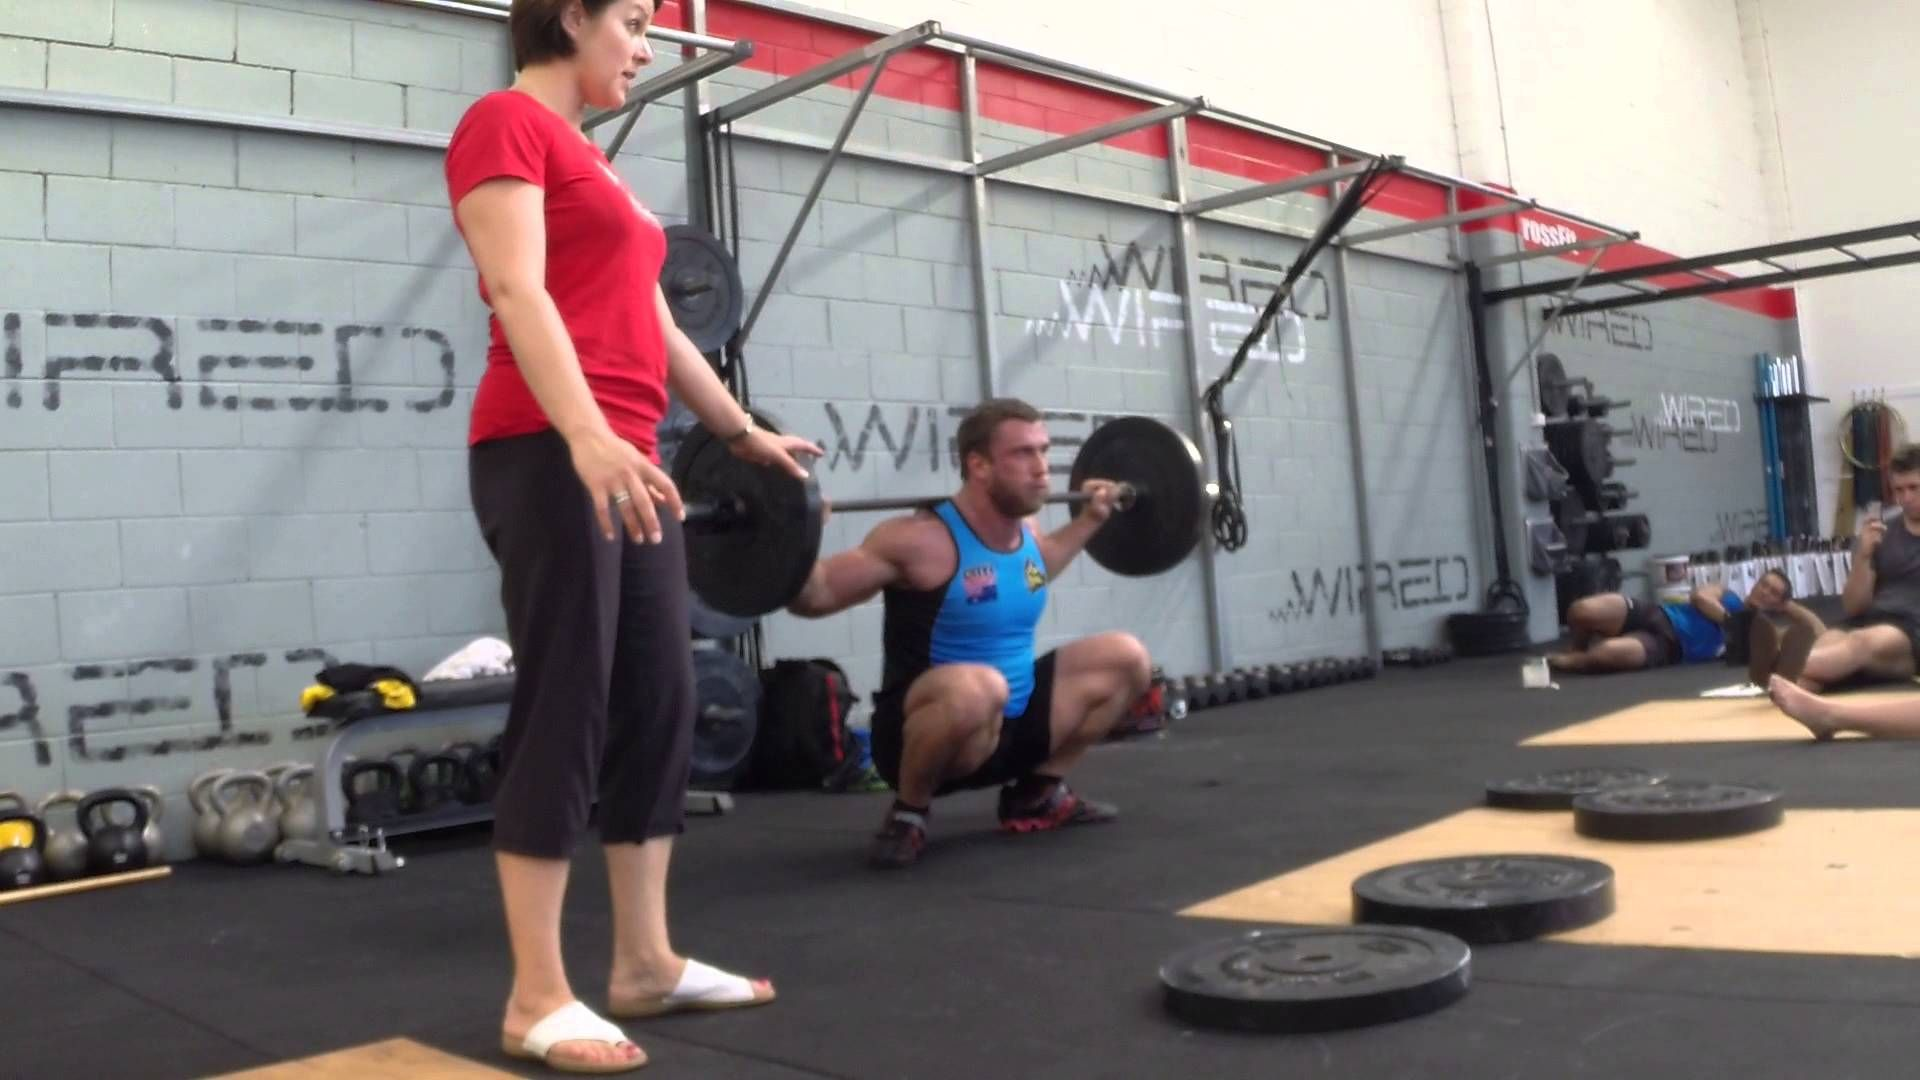 Dmitry Klokov Assistance Exercises From A Seminar Updated All Things Gym Gym Exercise Seminar